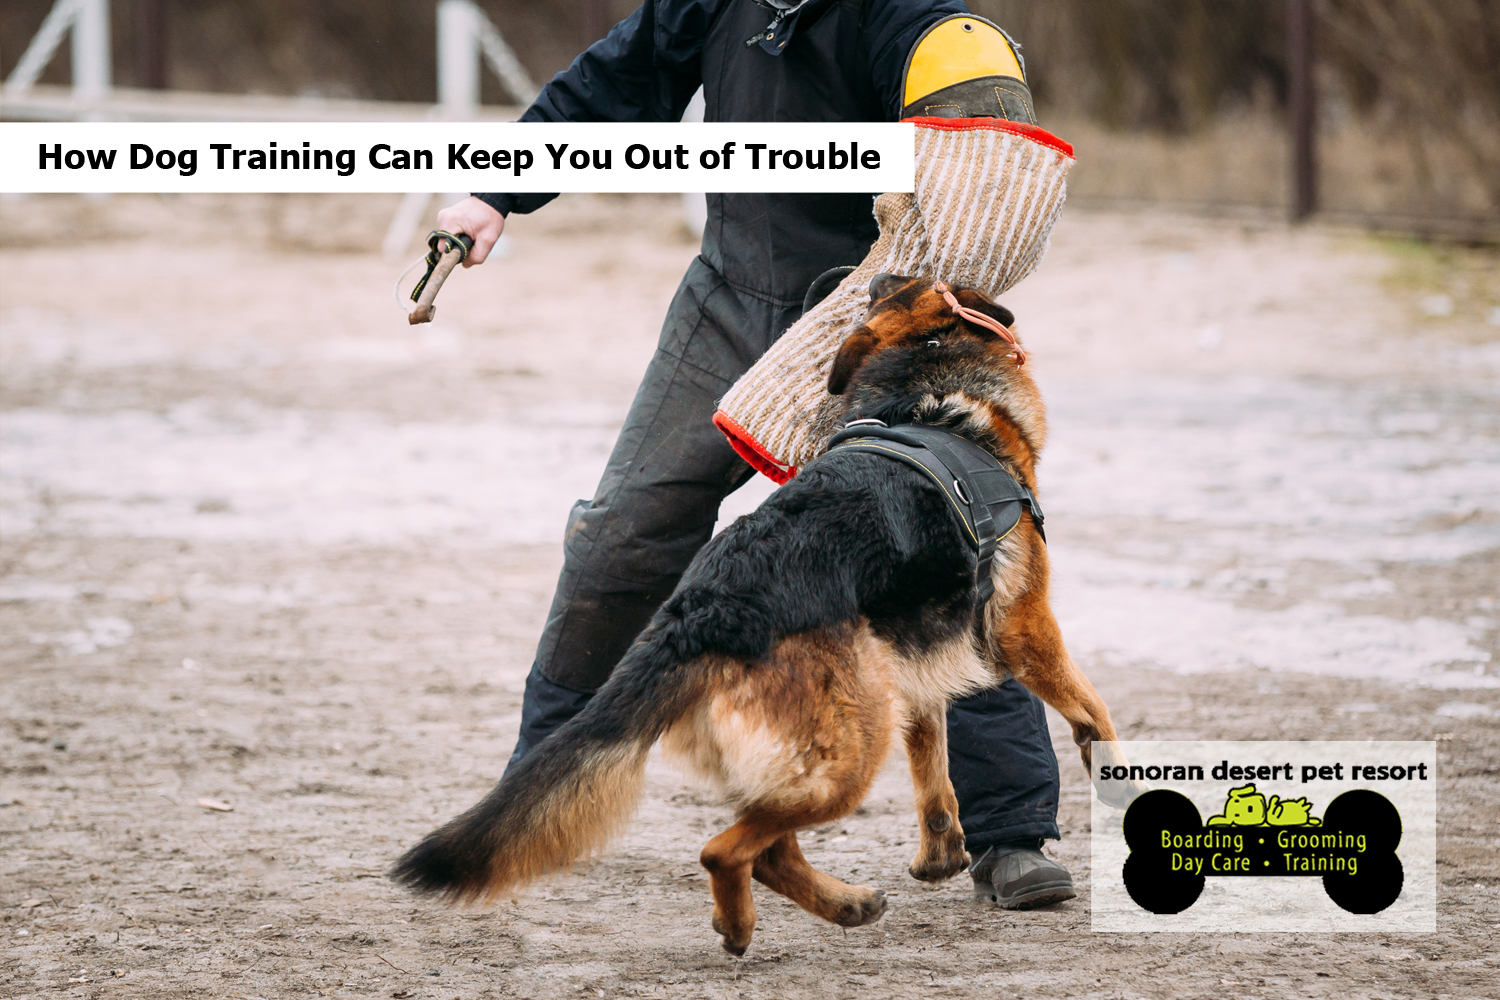 How Dog Training Can Keep You Out of Trouble